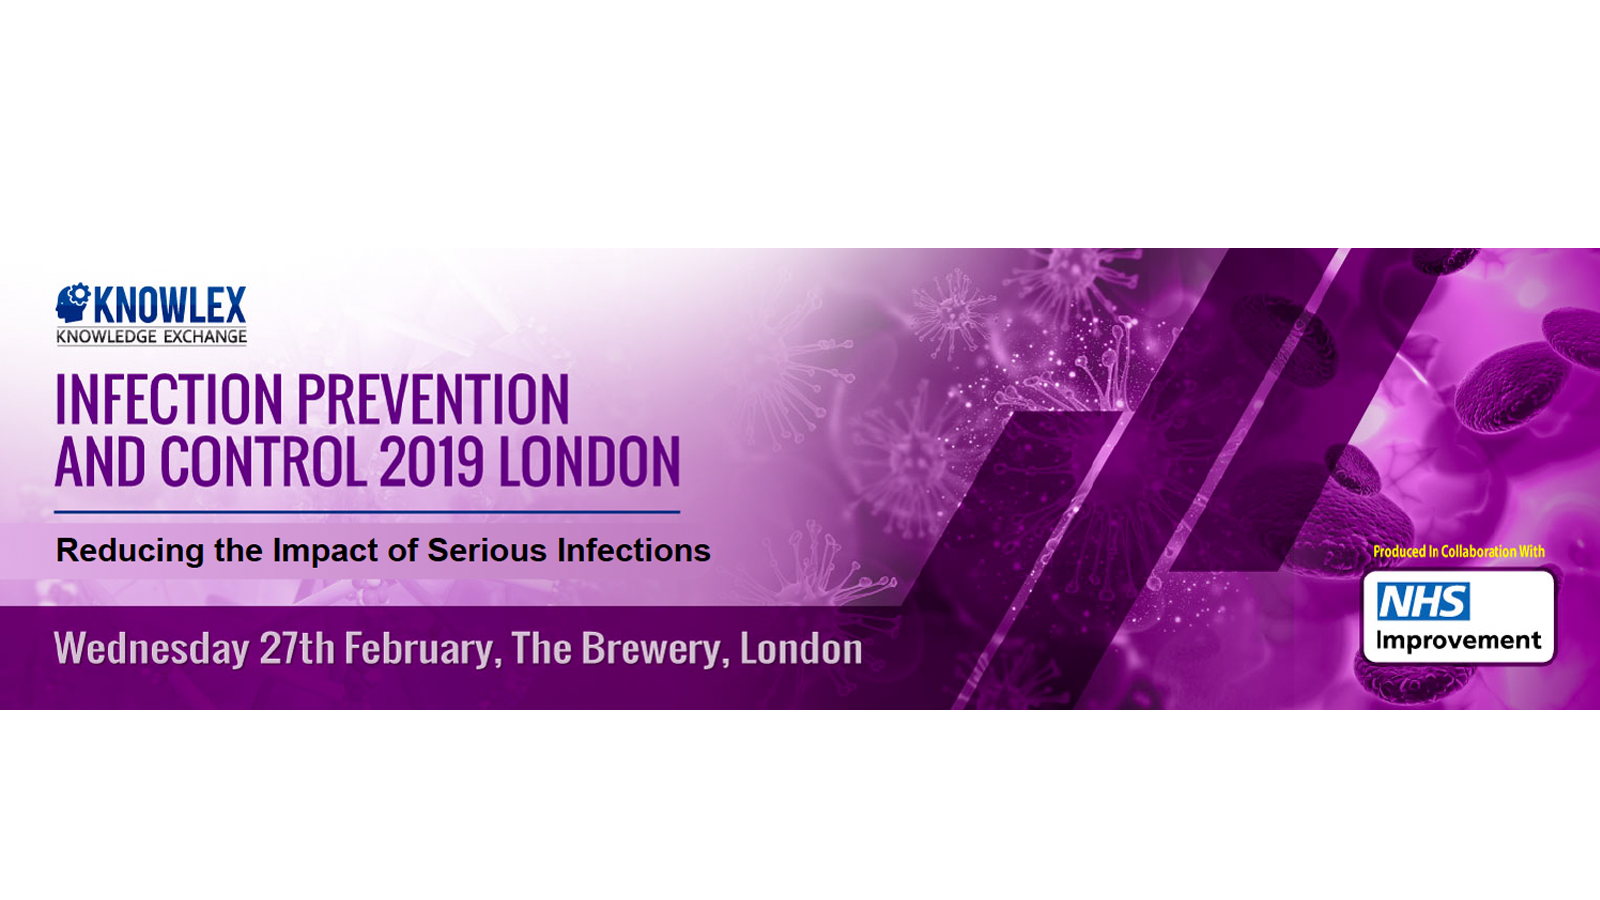 Infection Prevention and Control 2019